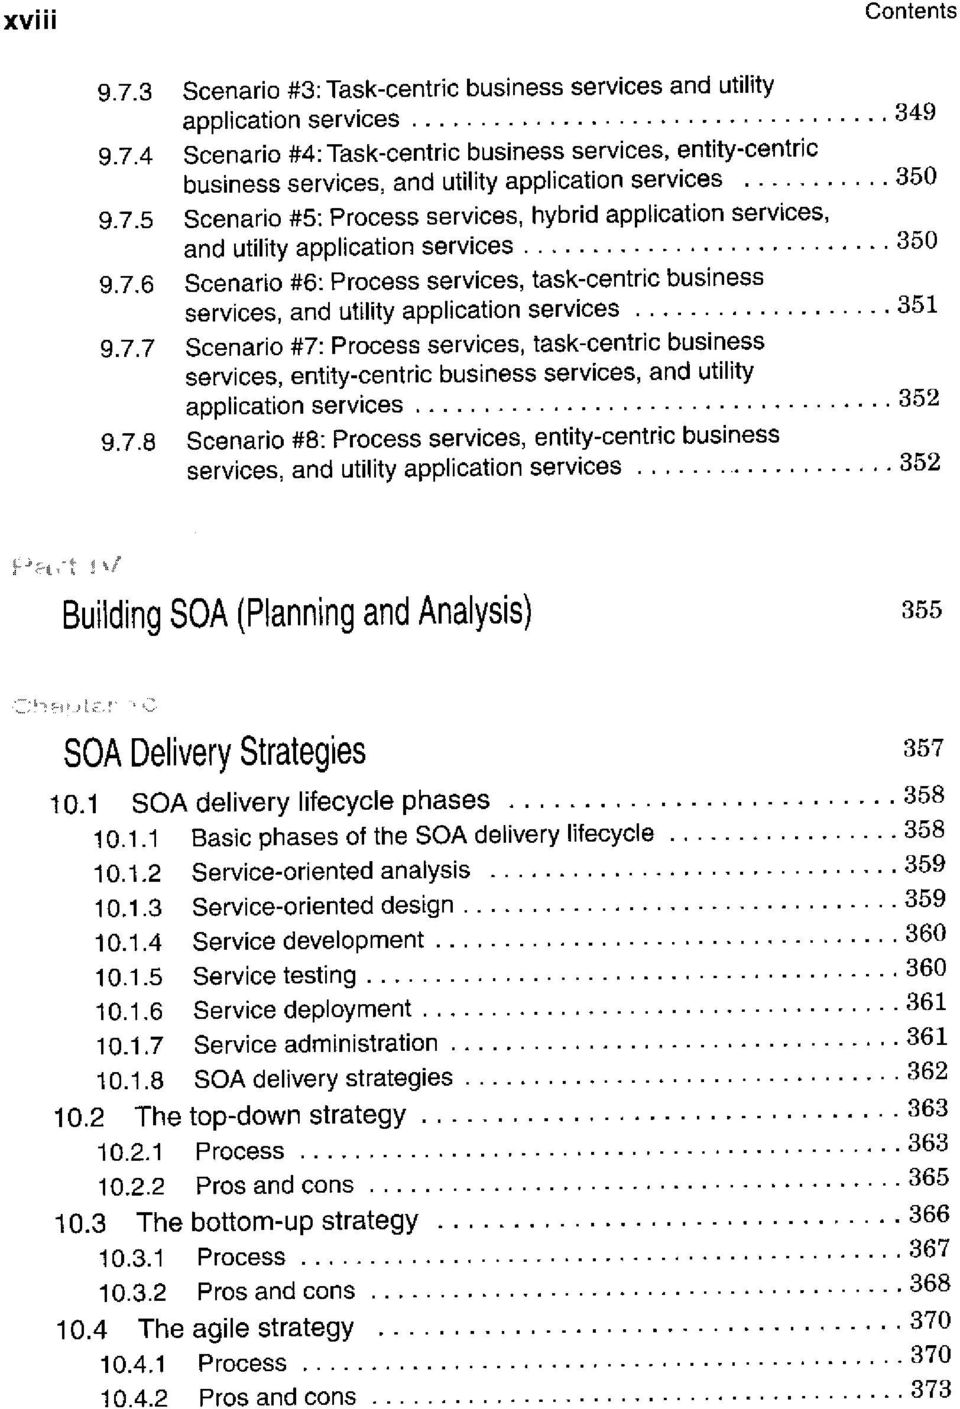 7.7 Scenario #7: Process services, task-centric business services, entity-centric business services, and utility application services 352 9.7.8 Scenario #8: Process services, entity-centric business services, and utility application services 352 Building SOA (Planning and Analysis) 355 SOA Delivery Strategies 357 10.